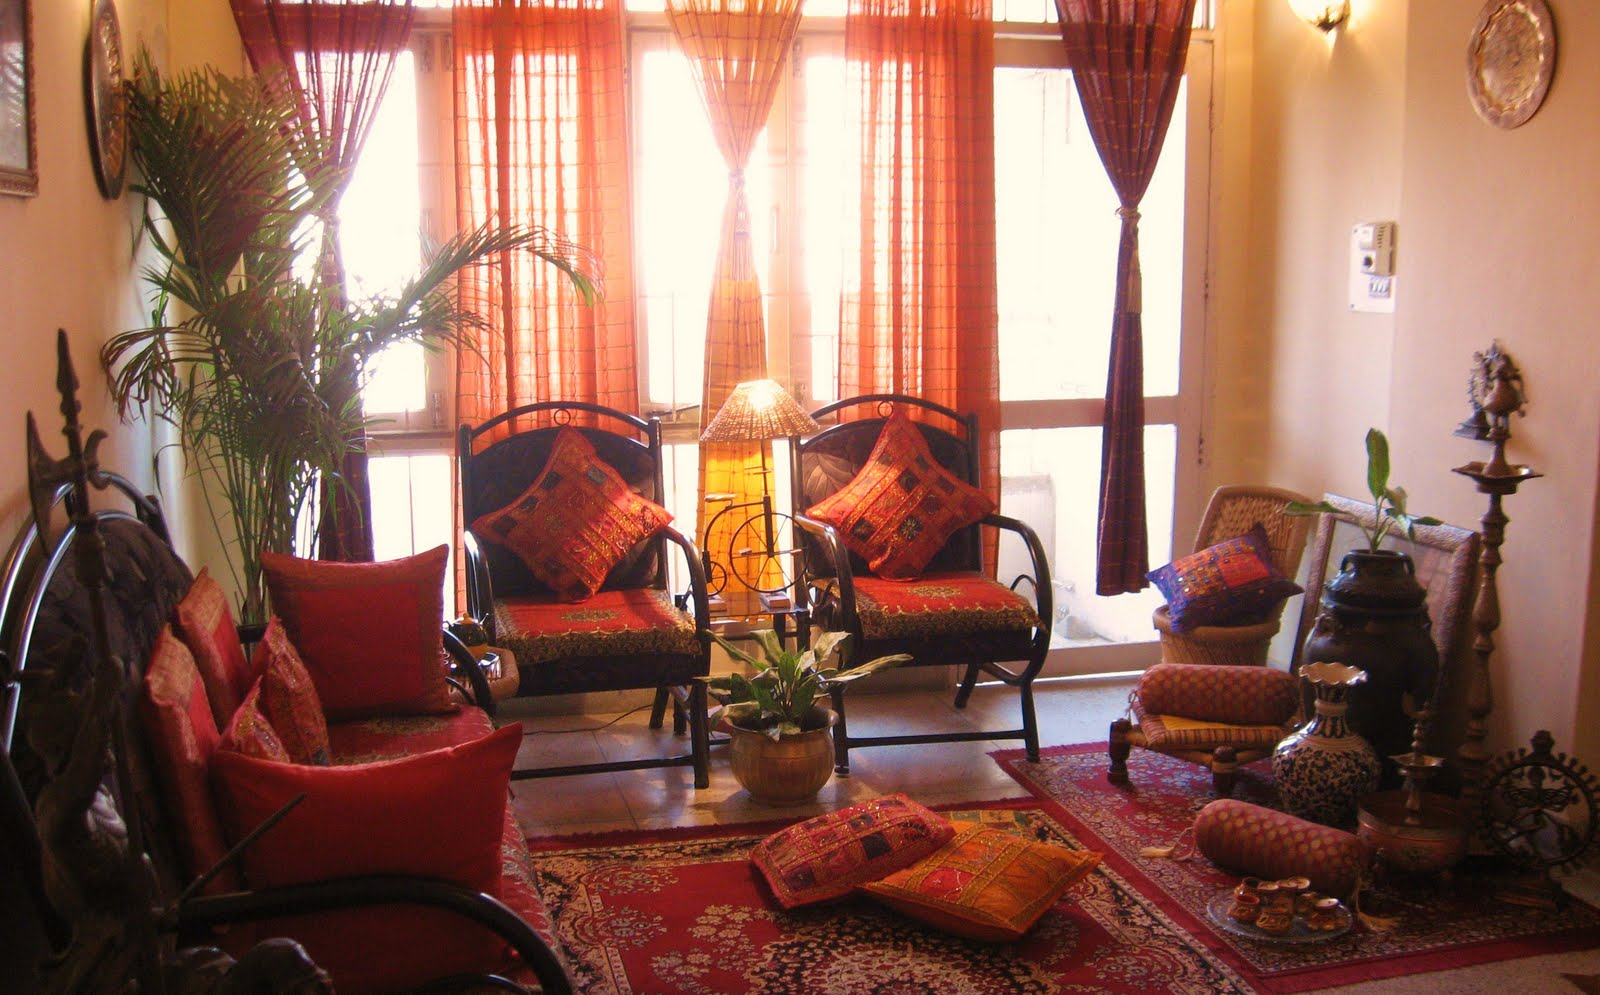 Ethnic indian decor - Interior design ideas for indian homes ...